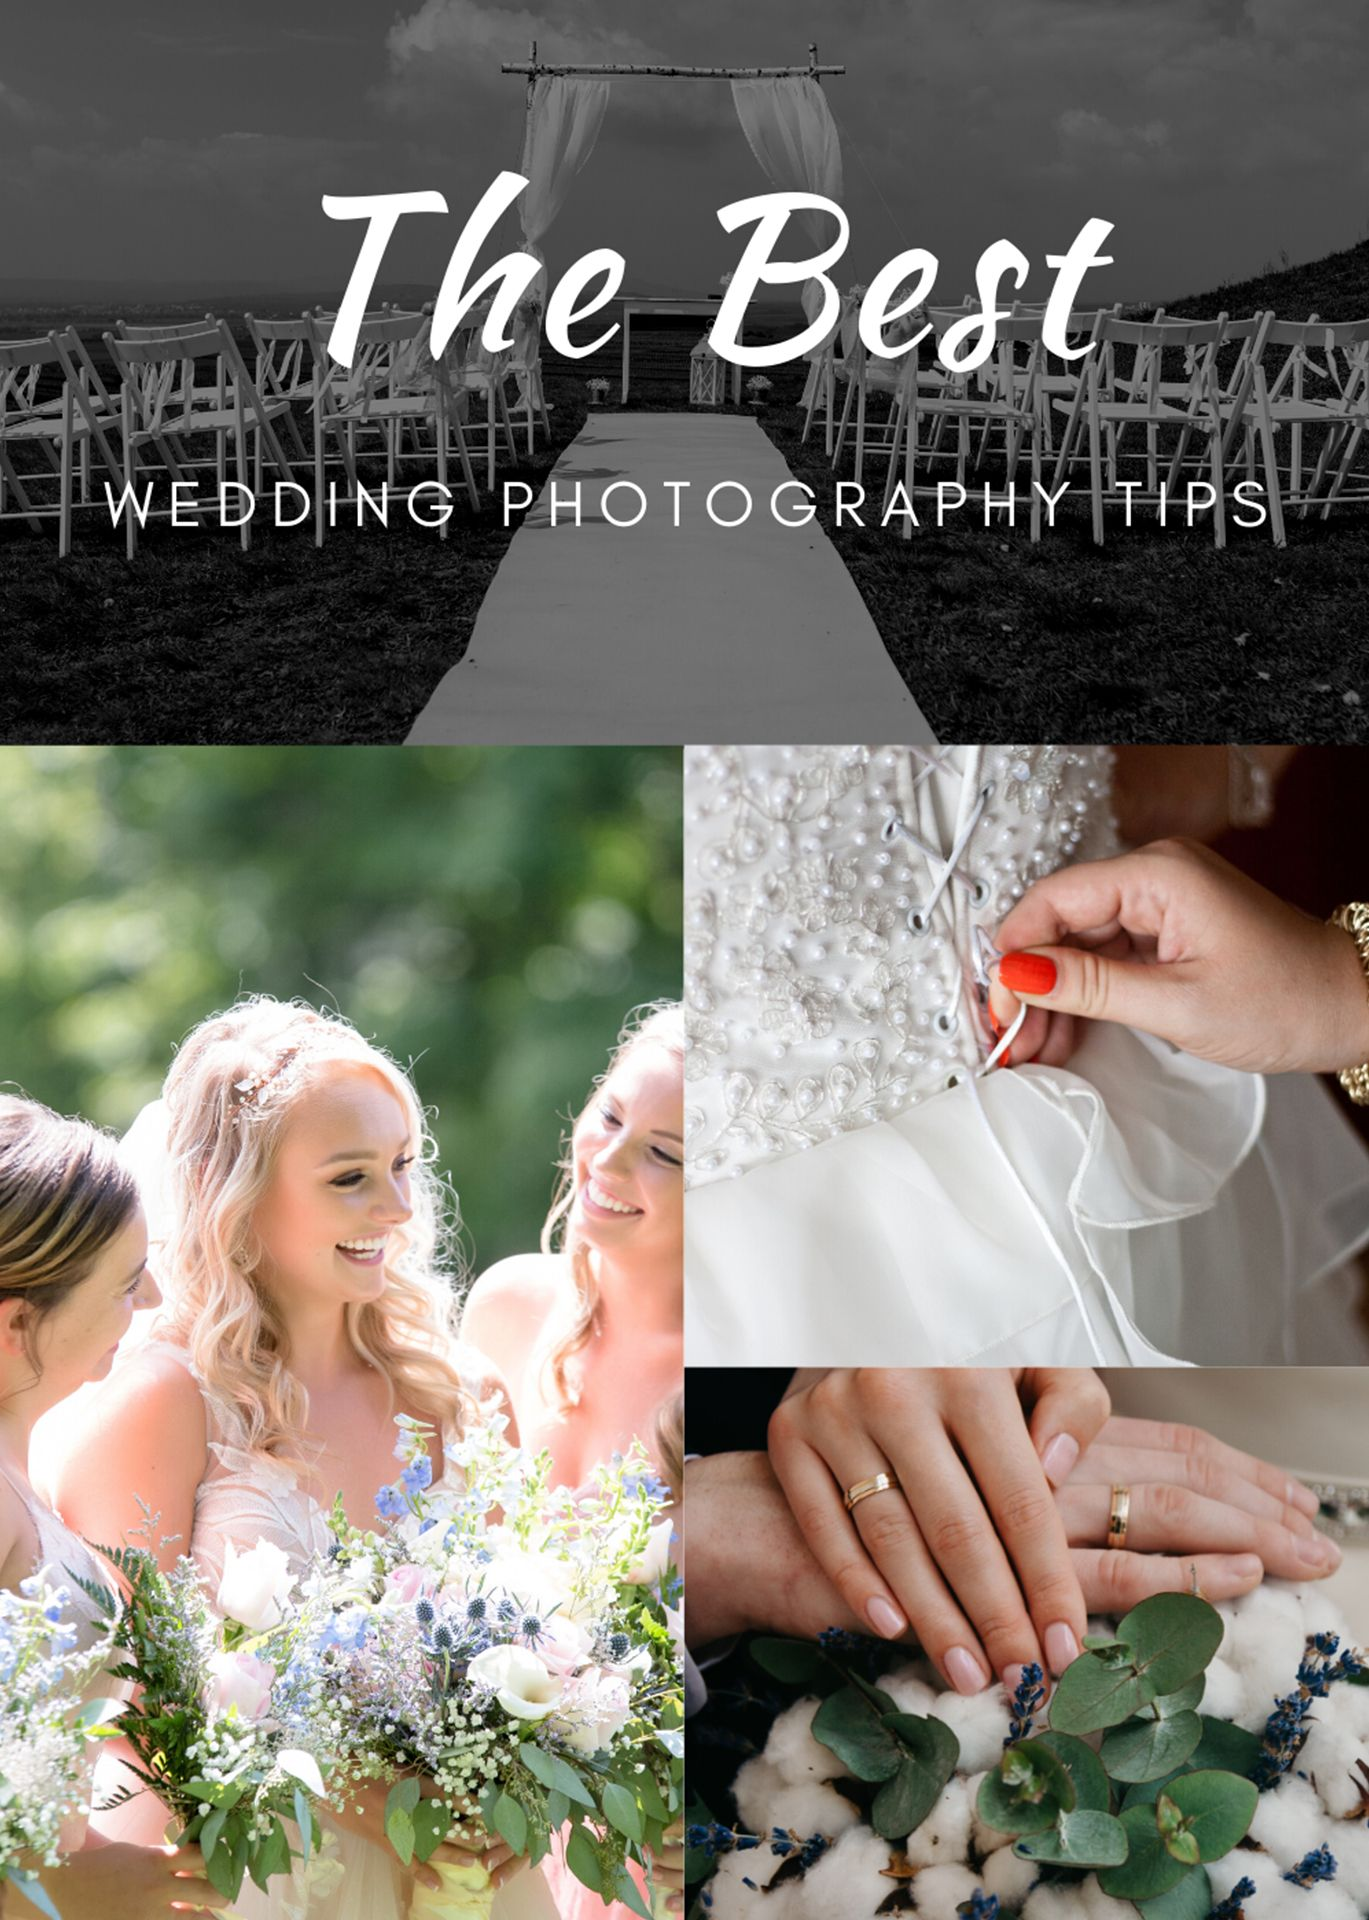 Do you want to take better wedding photos? A wedding is one of the most precious days of life for a couple. If you're a wedding photographer, then it's your responsibility to capture the best moments and create a great memory for the couples.  #photographers #weedingphotographers #photographytips #tutorial